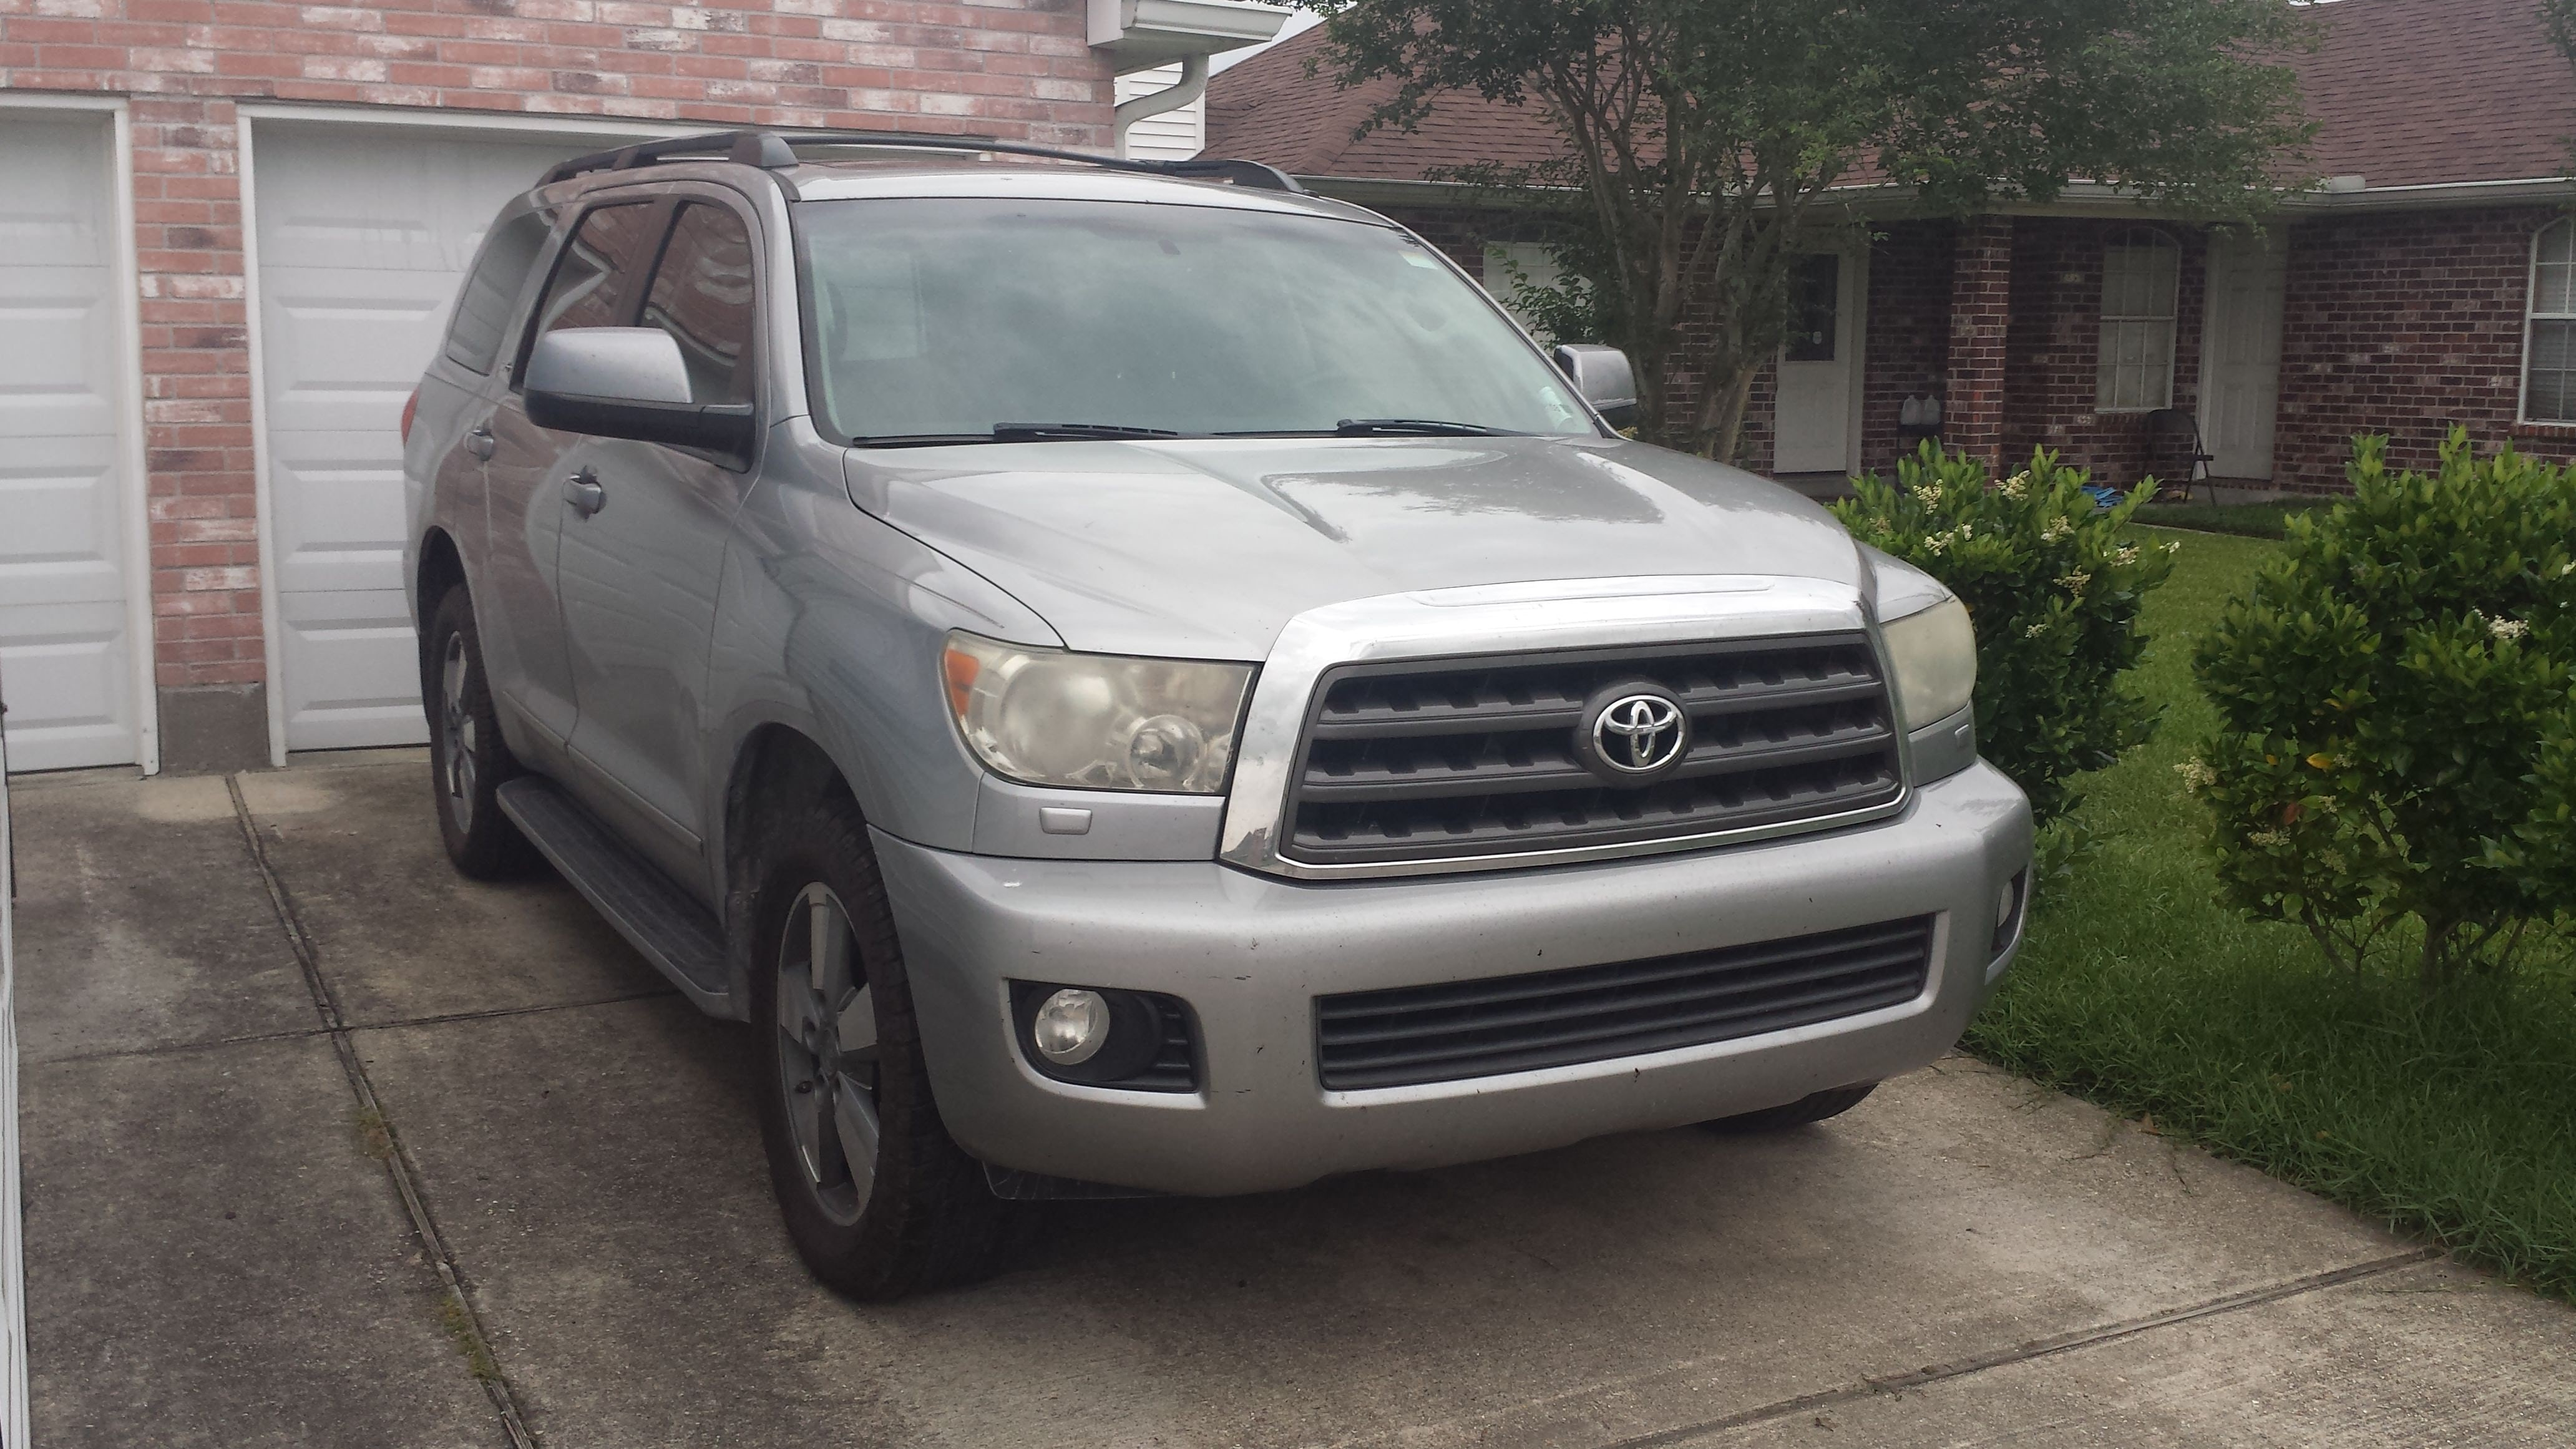 Junk 2008 Toyota Sequoia in La Place